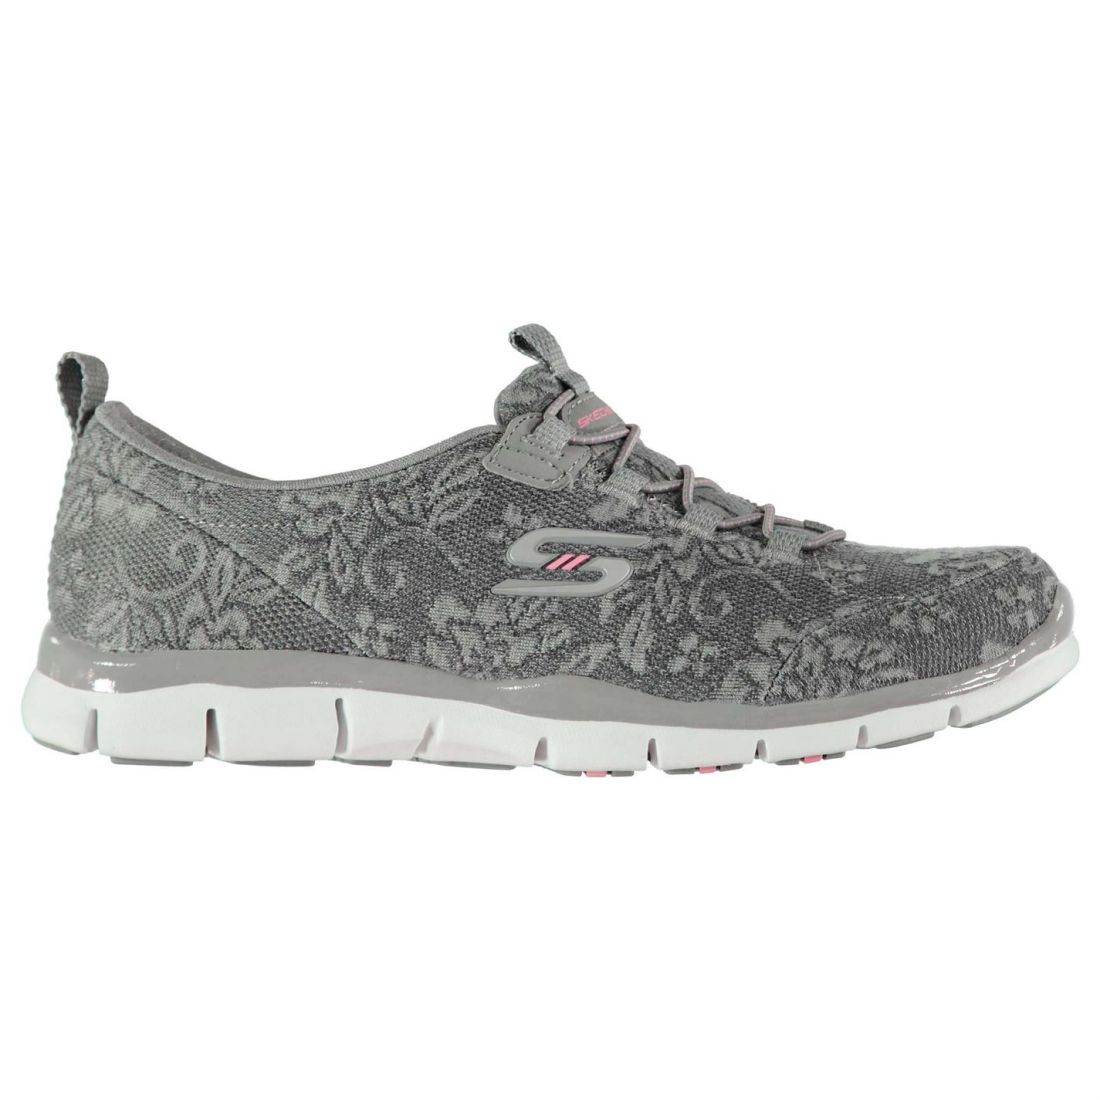 Skechers Womens Gratis Lace Trainers Runners Elasticated Laces Lightweight